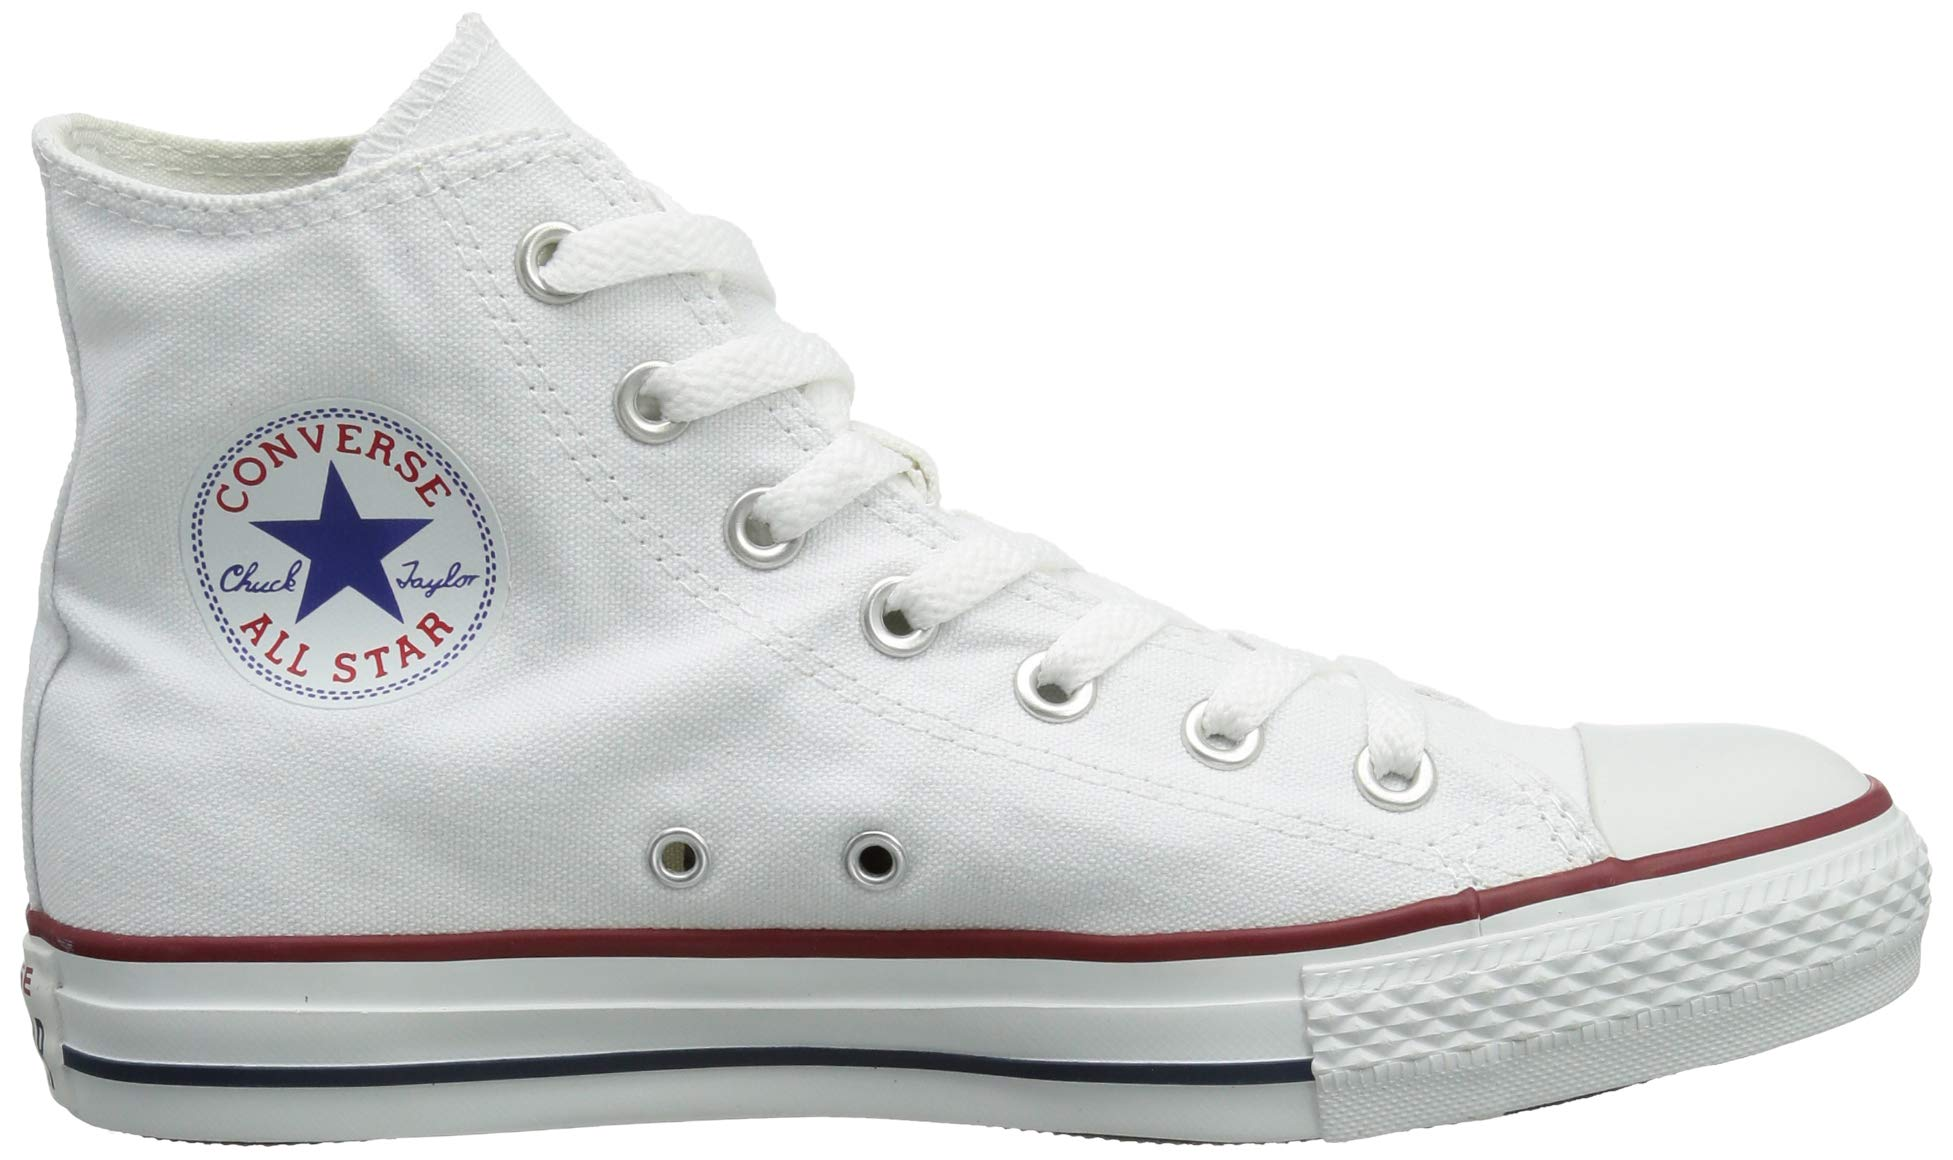 Chuck Taylor All Star Canvas High Top, Optical White, 3 M US by Converse (Image #7)